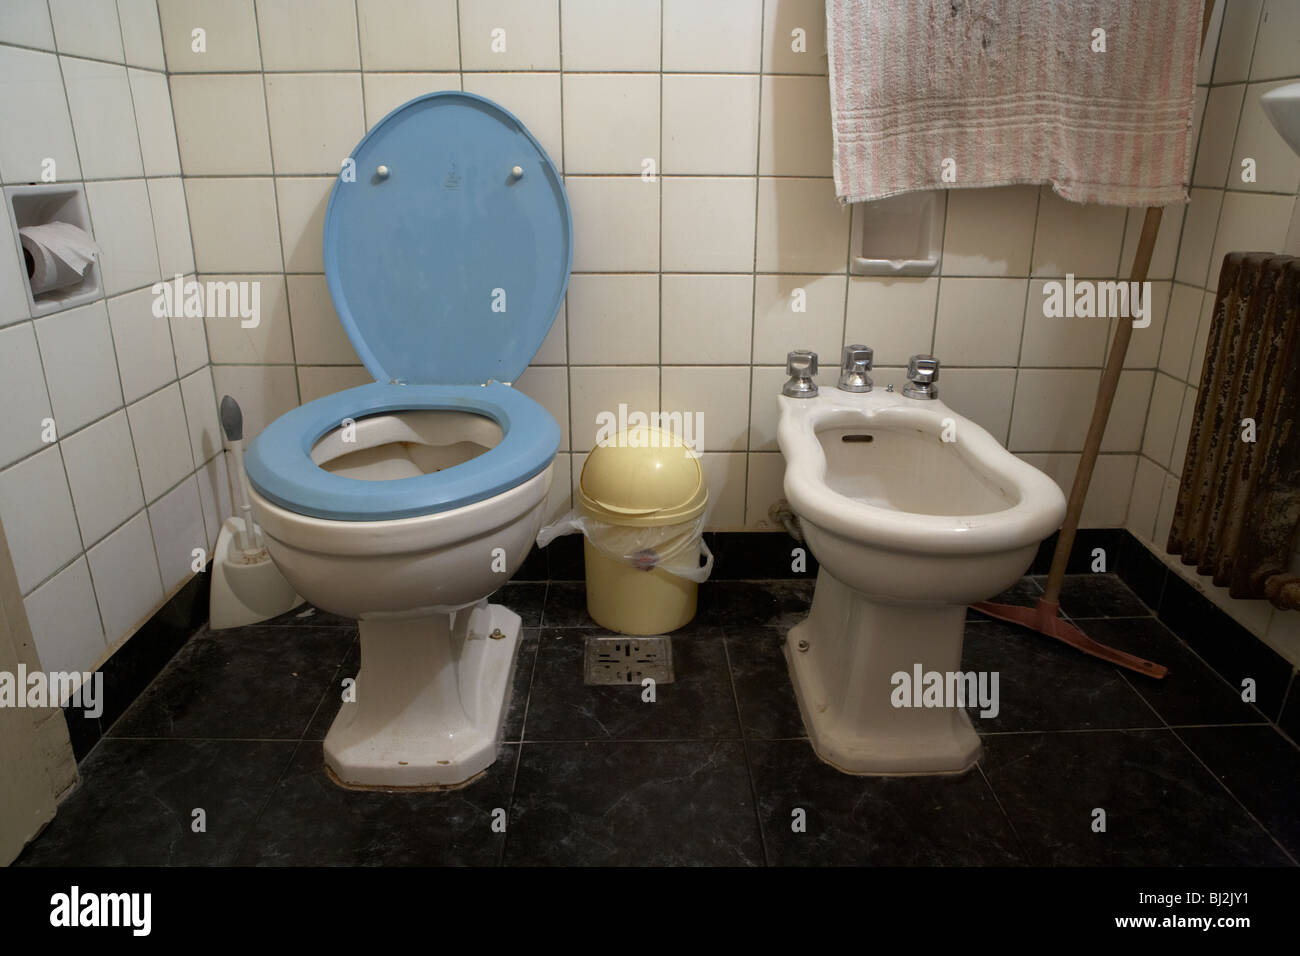 old toilet seat stockfotos old toilet seat bilder alamy. Black Bedroom Furniture Sets. Home Design Ideas